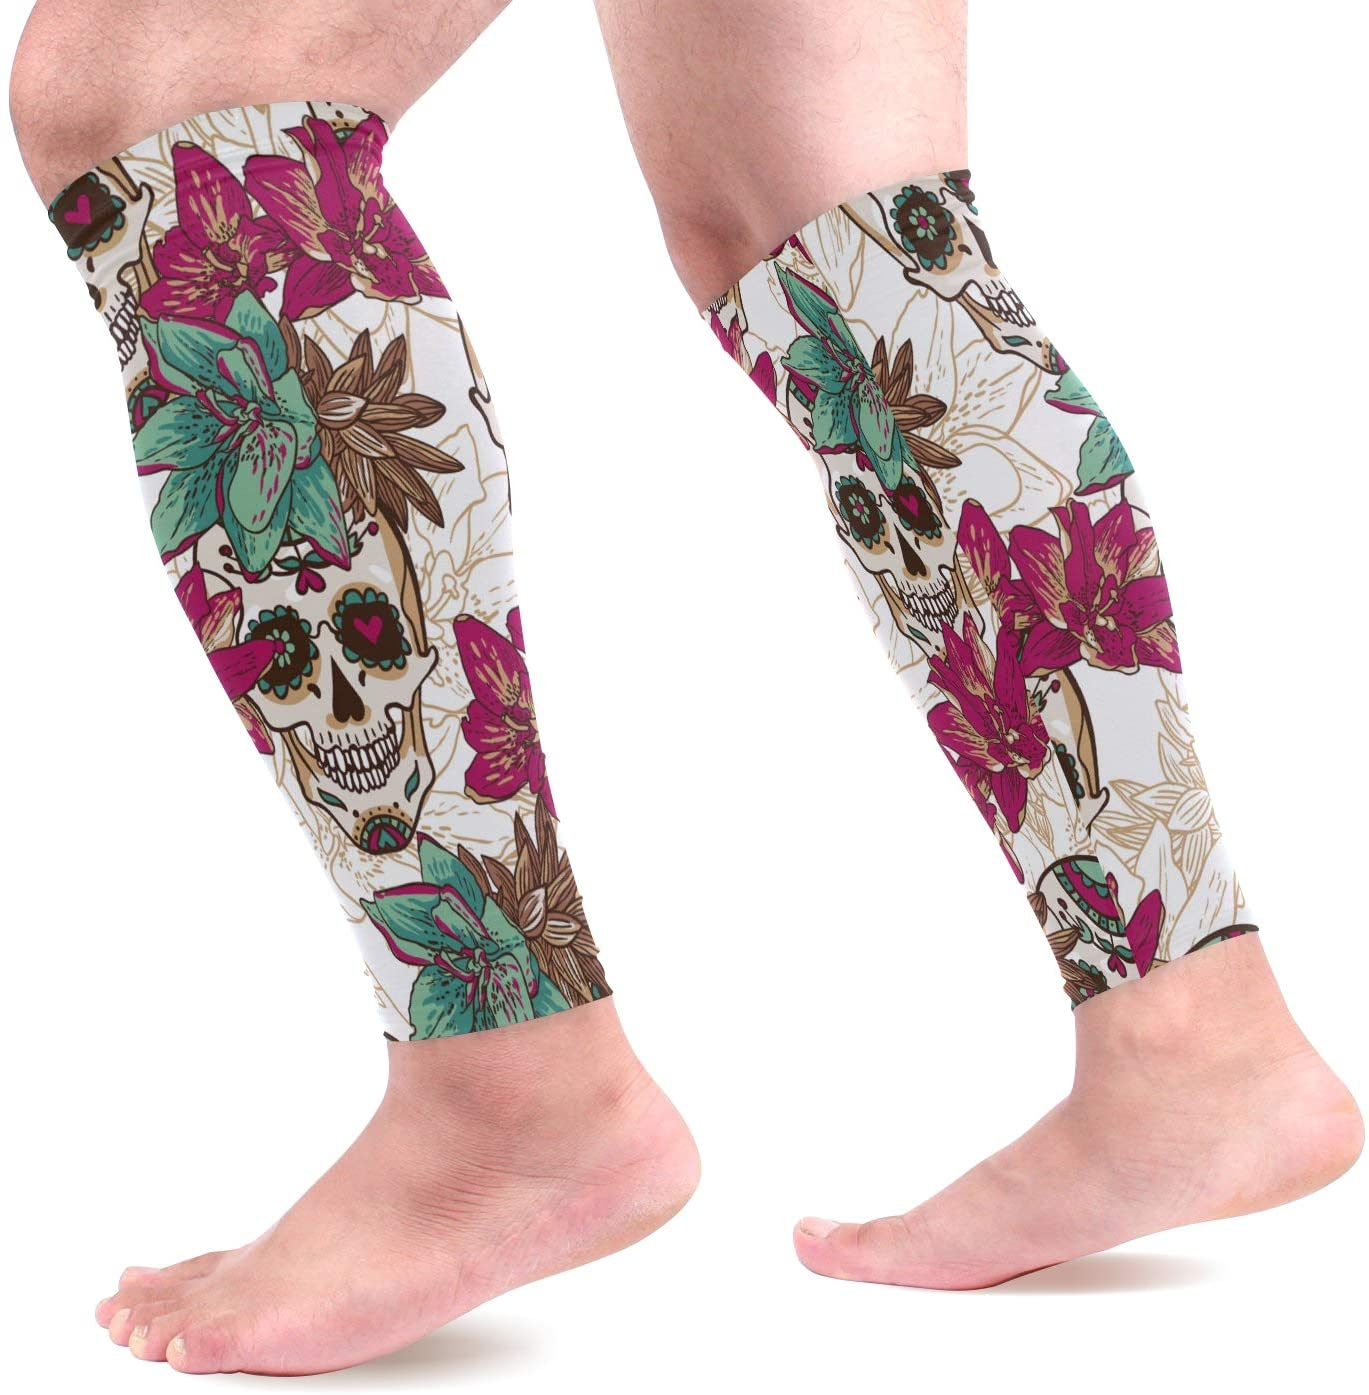 Calf Compression Sleeves Skull Hearts and Flowers Leg Compression Socks for Runners, Shin Splint, Varicose Vein & Calf Pain Relief - Calf Guard for Running, Cycling, Maternity, Nurses Women